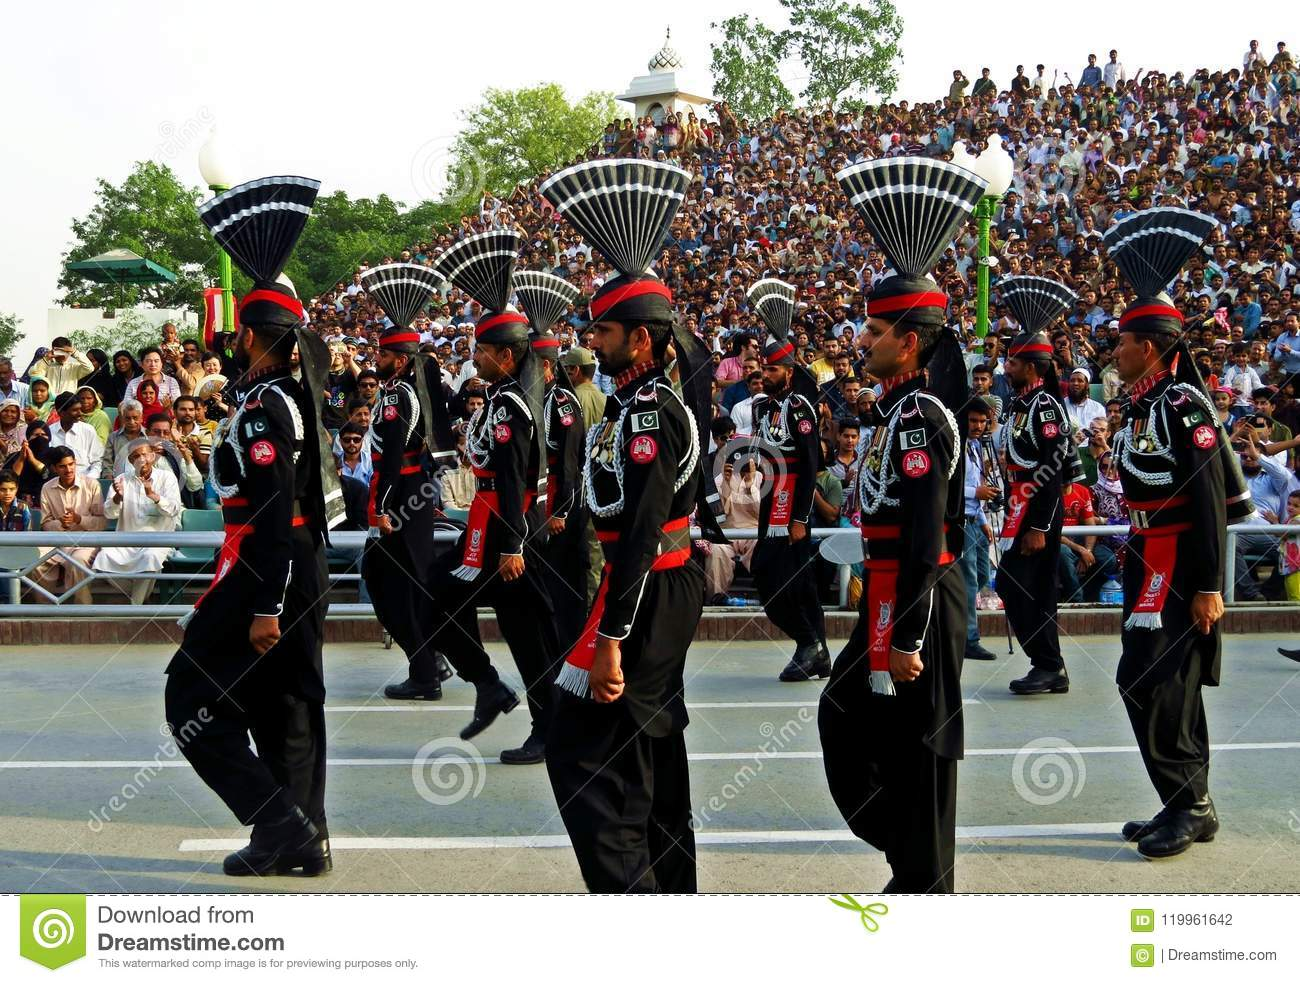 pakistani soldiers at border closing ceremony between Pakistan and India, Wagha border